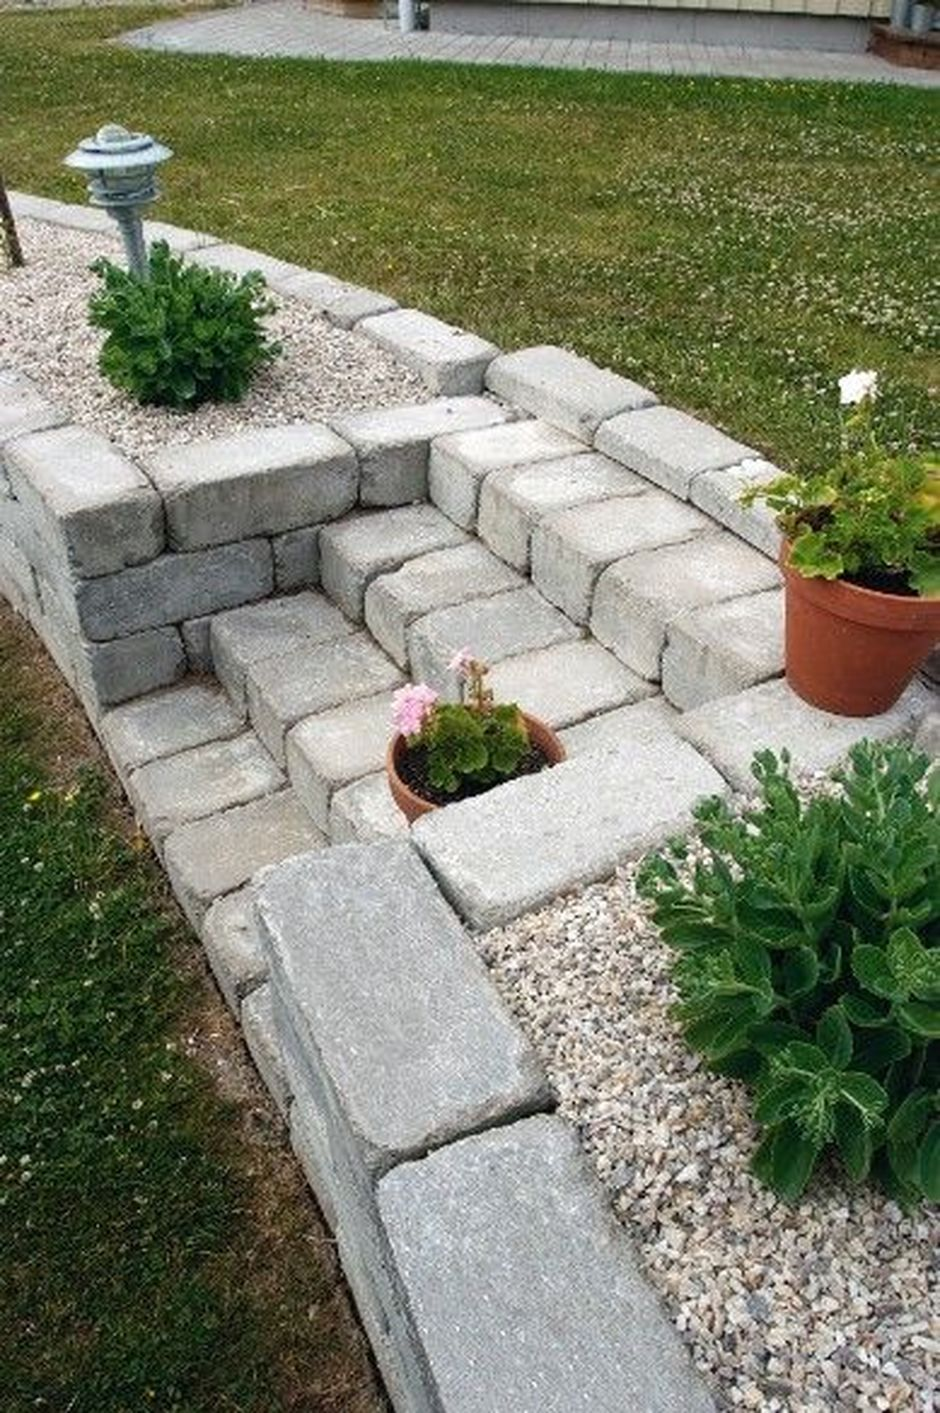 That is How to Make Garden Steps on a Slope 2